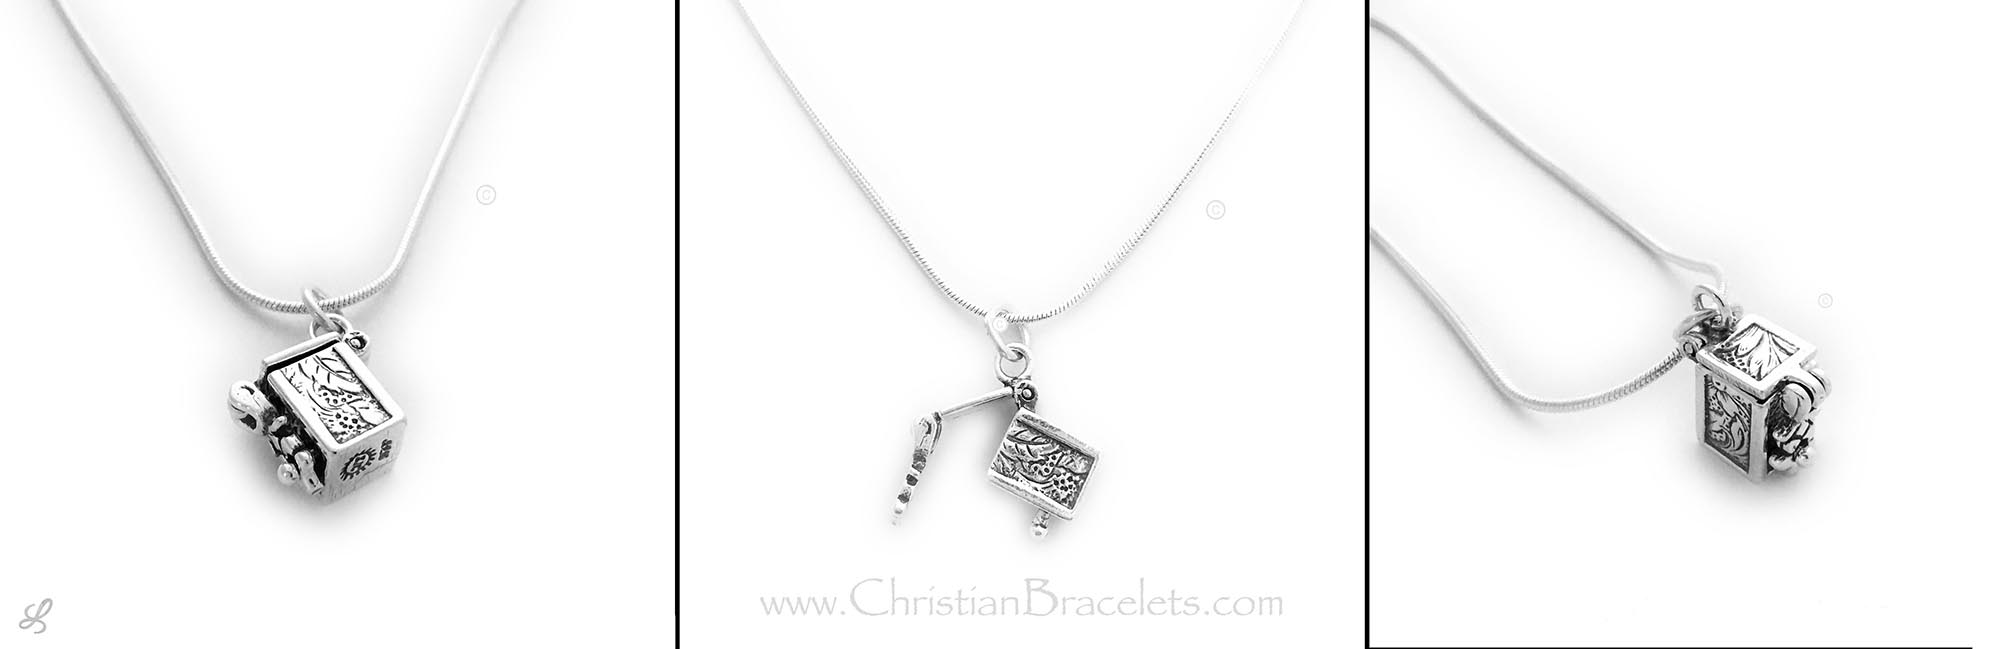 Sterling Silver Prayer Box Charm on a Sterling Silver Chain